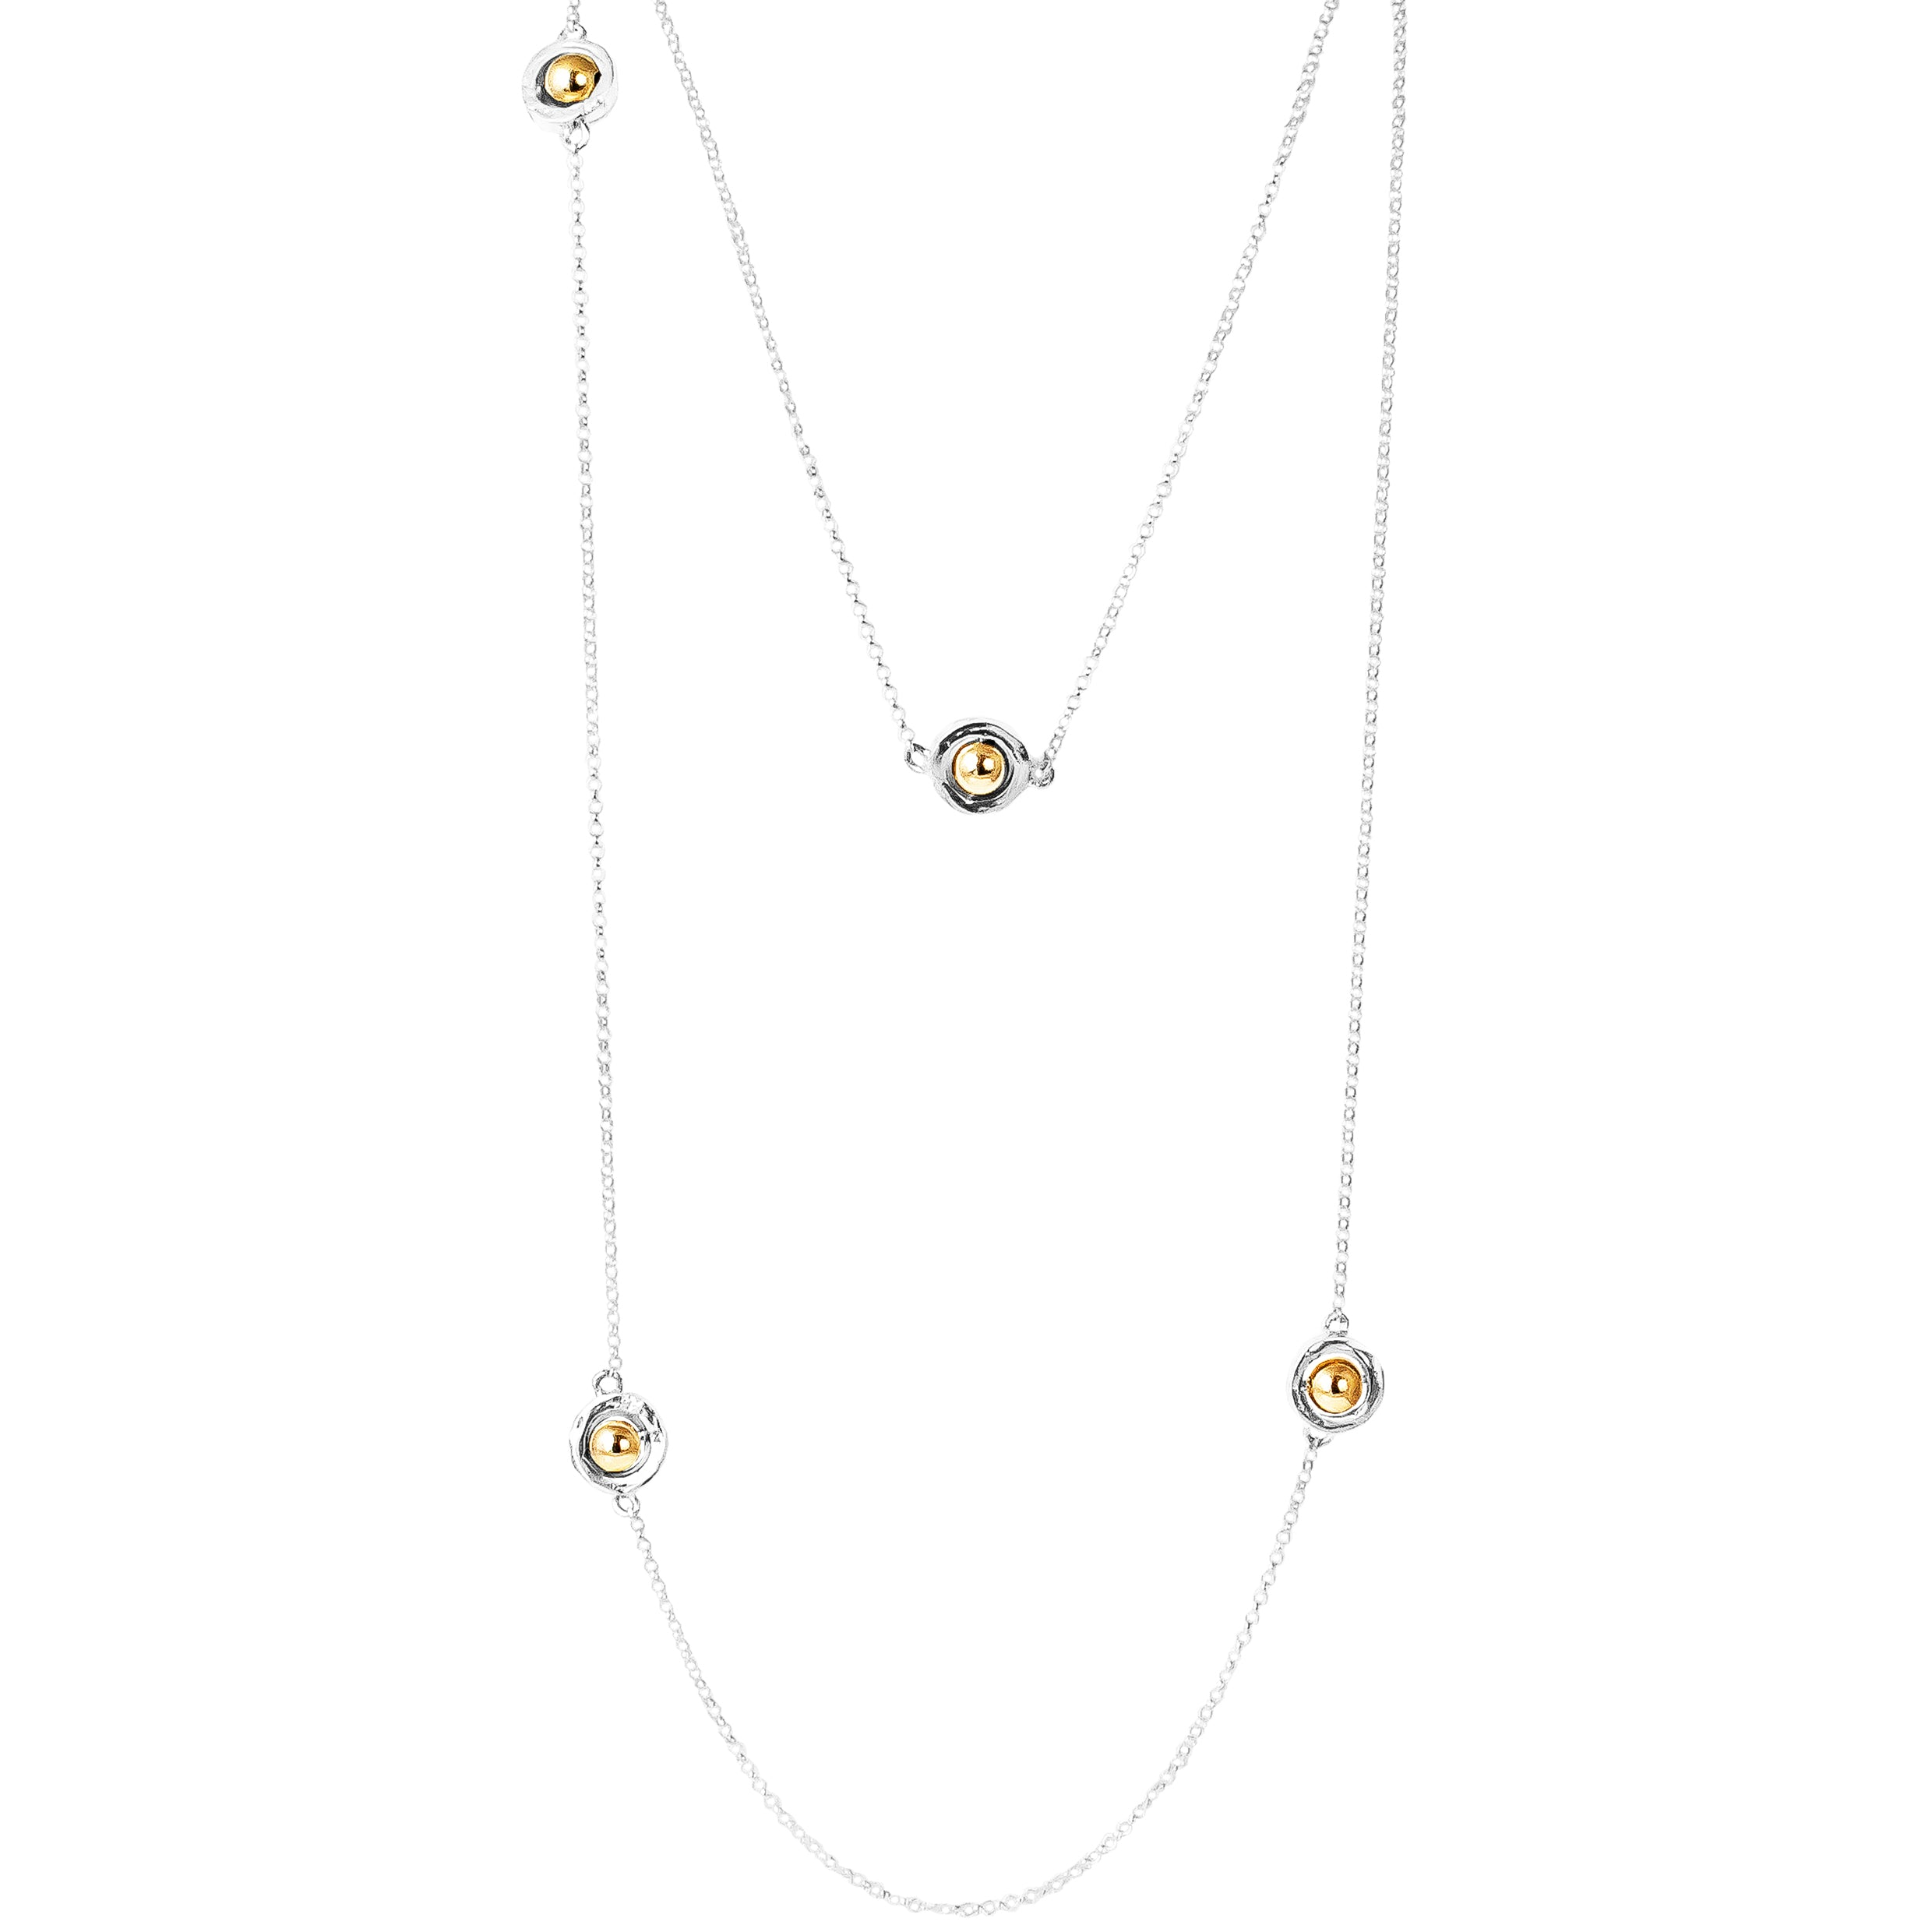 Atticus Multi Feature Necklace - Long | Polished Gold Detail